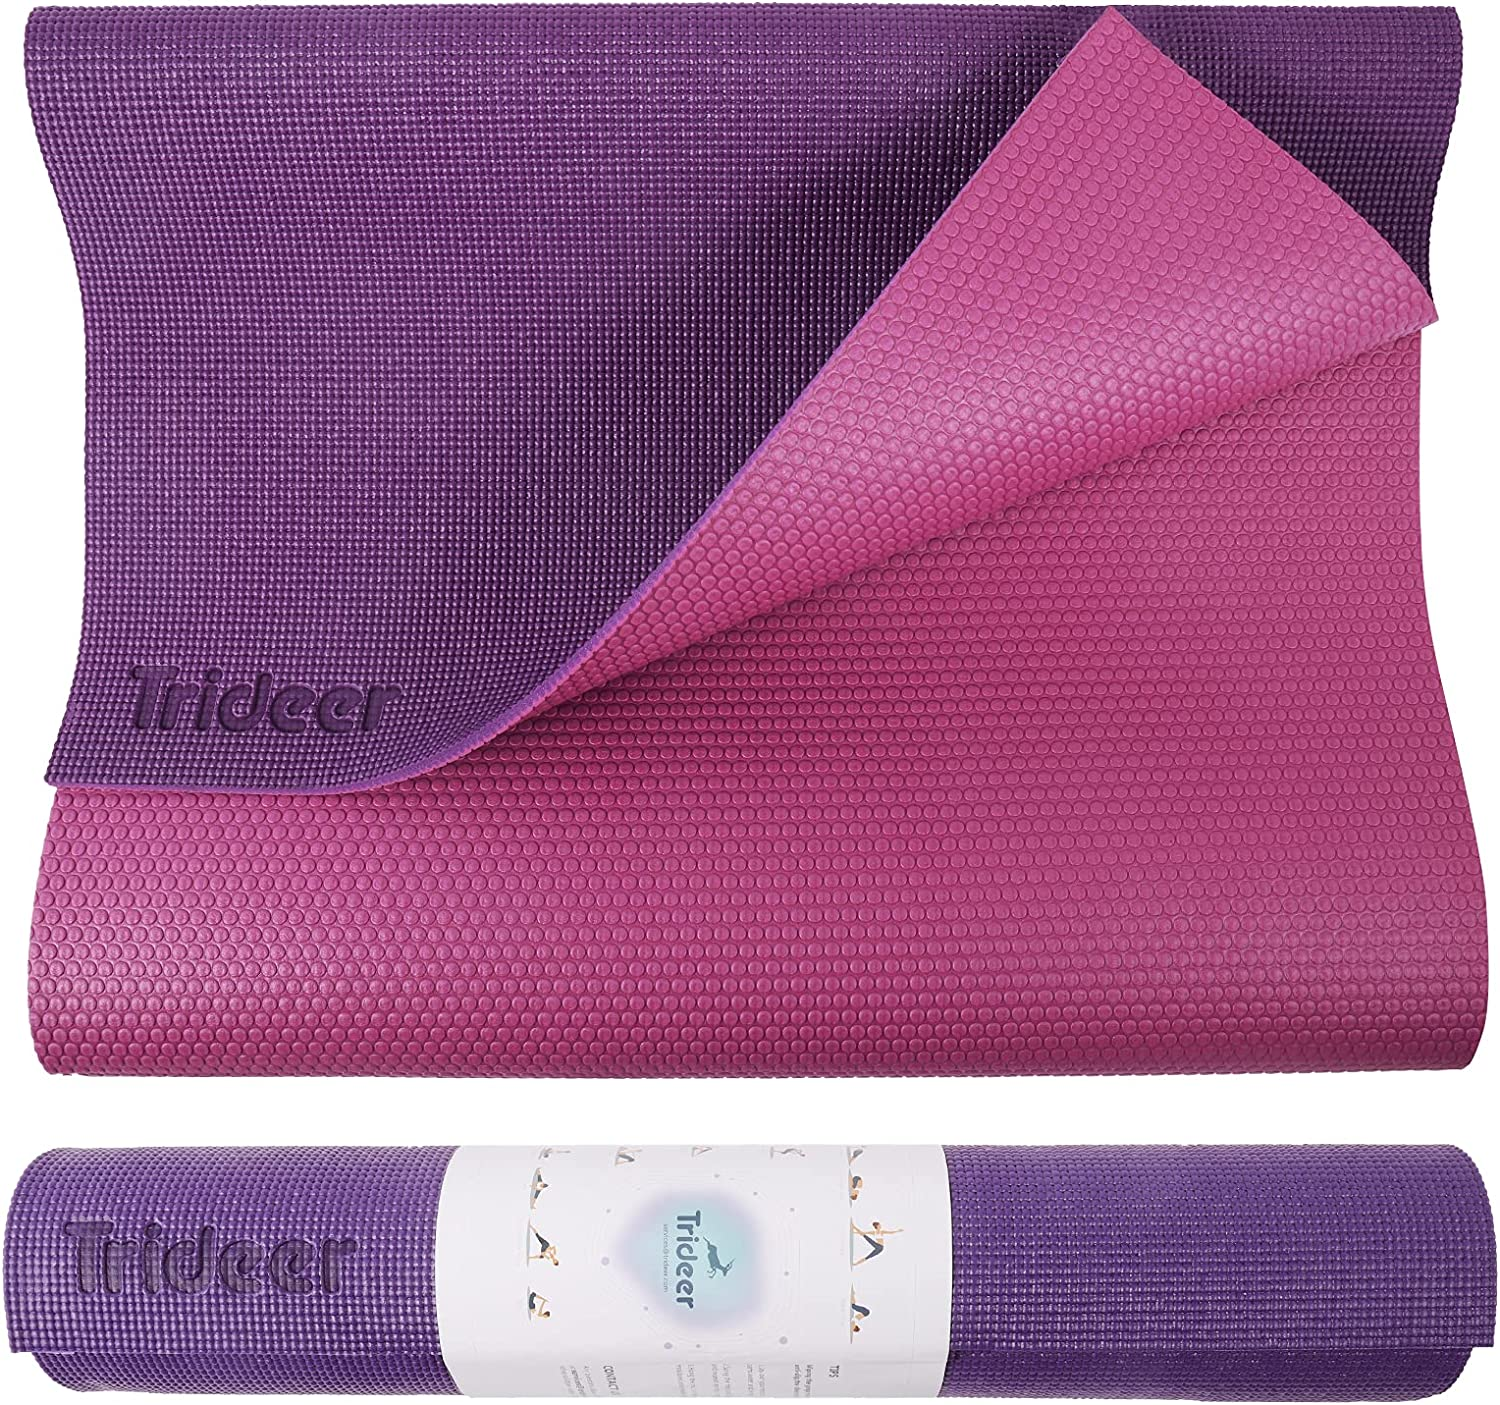 Trideer Overseas parallel Super popular specialty store import regular item 6 mm Thick Yoga Mat Exercise Non Slip wit Fitness